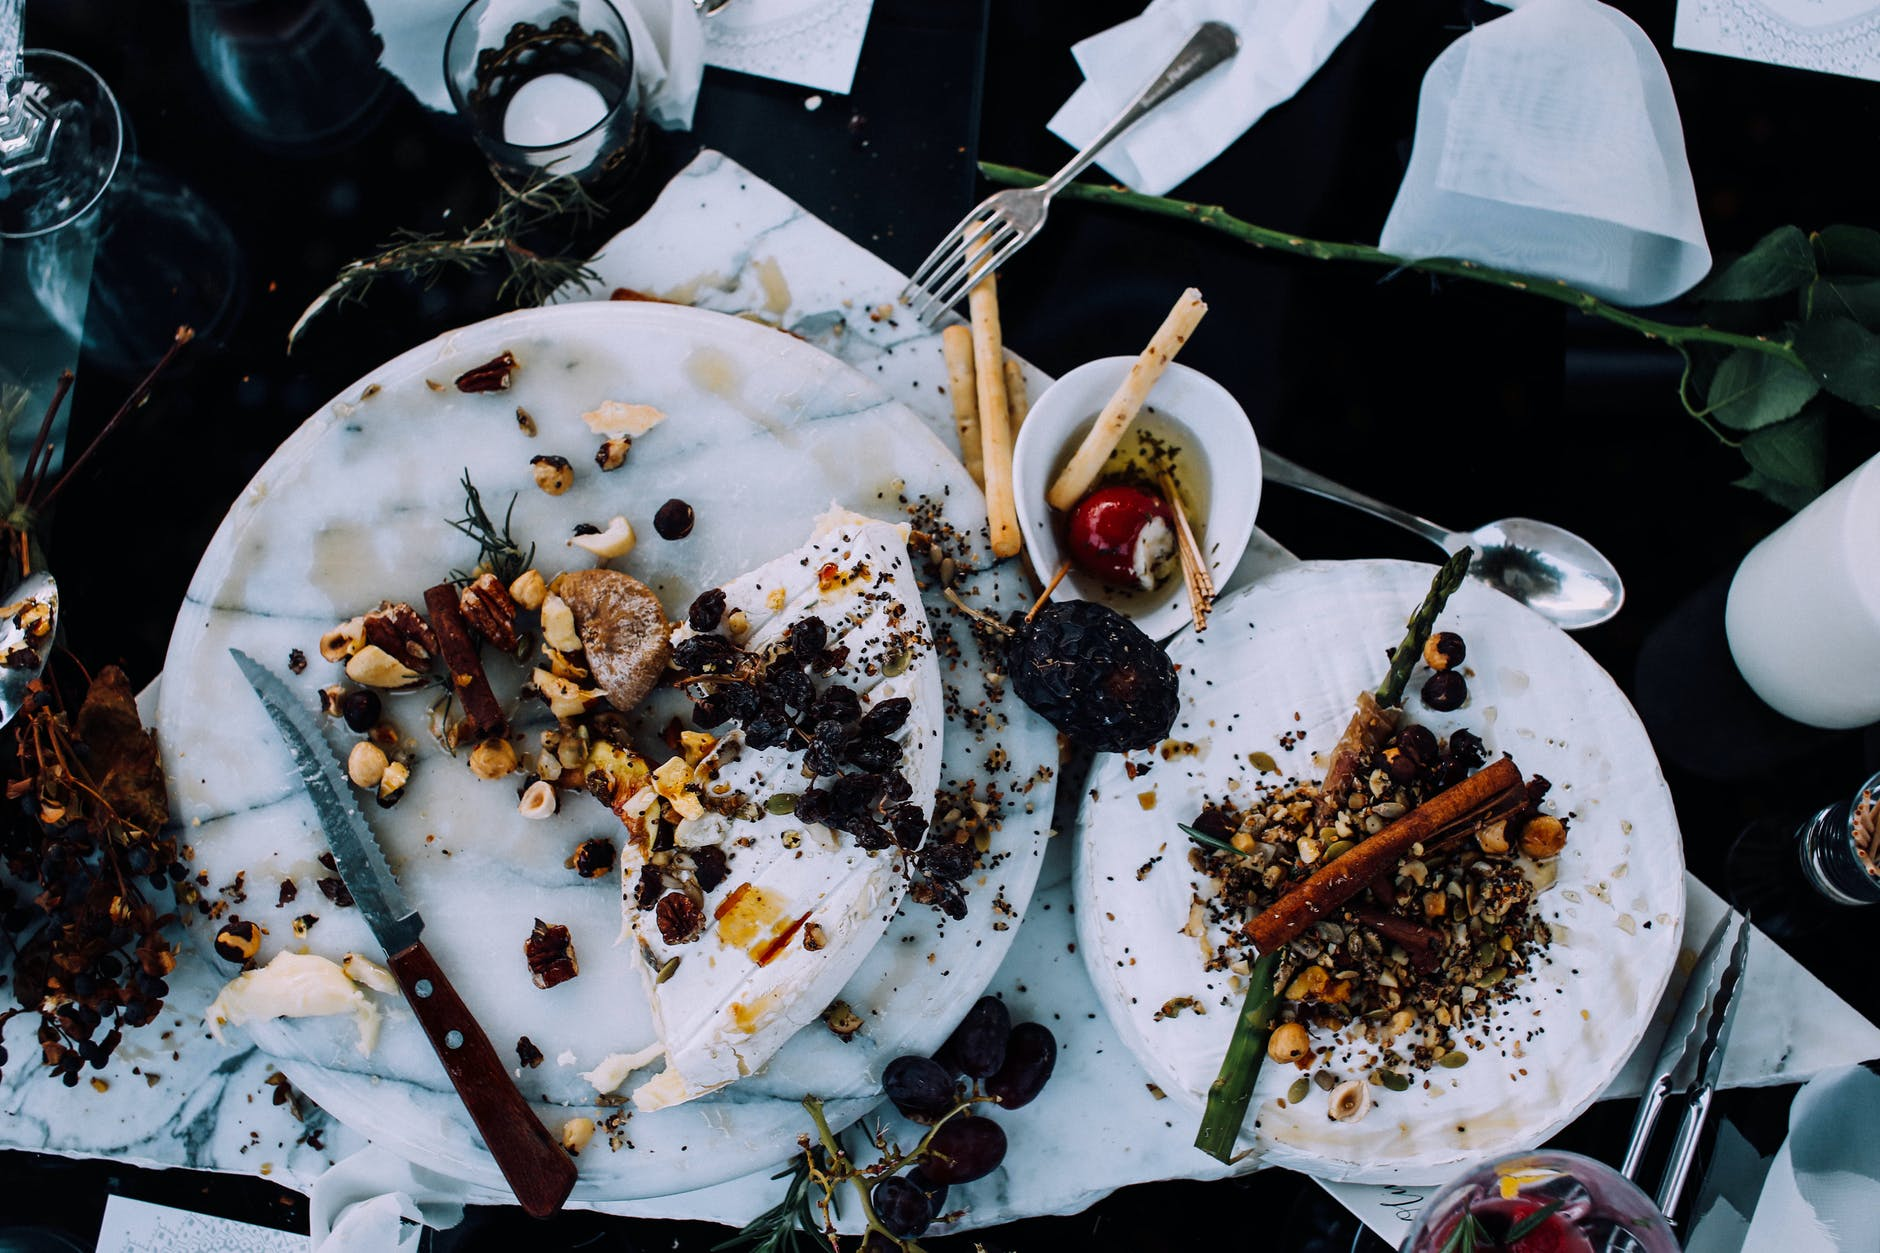 I couldn't believe how they had ruined my fancy plate setting. | Source: Pexels